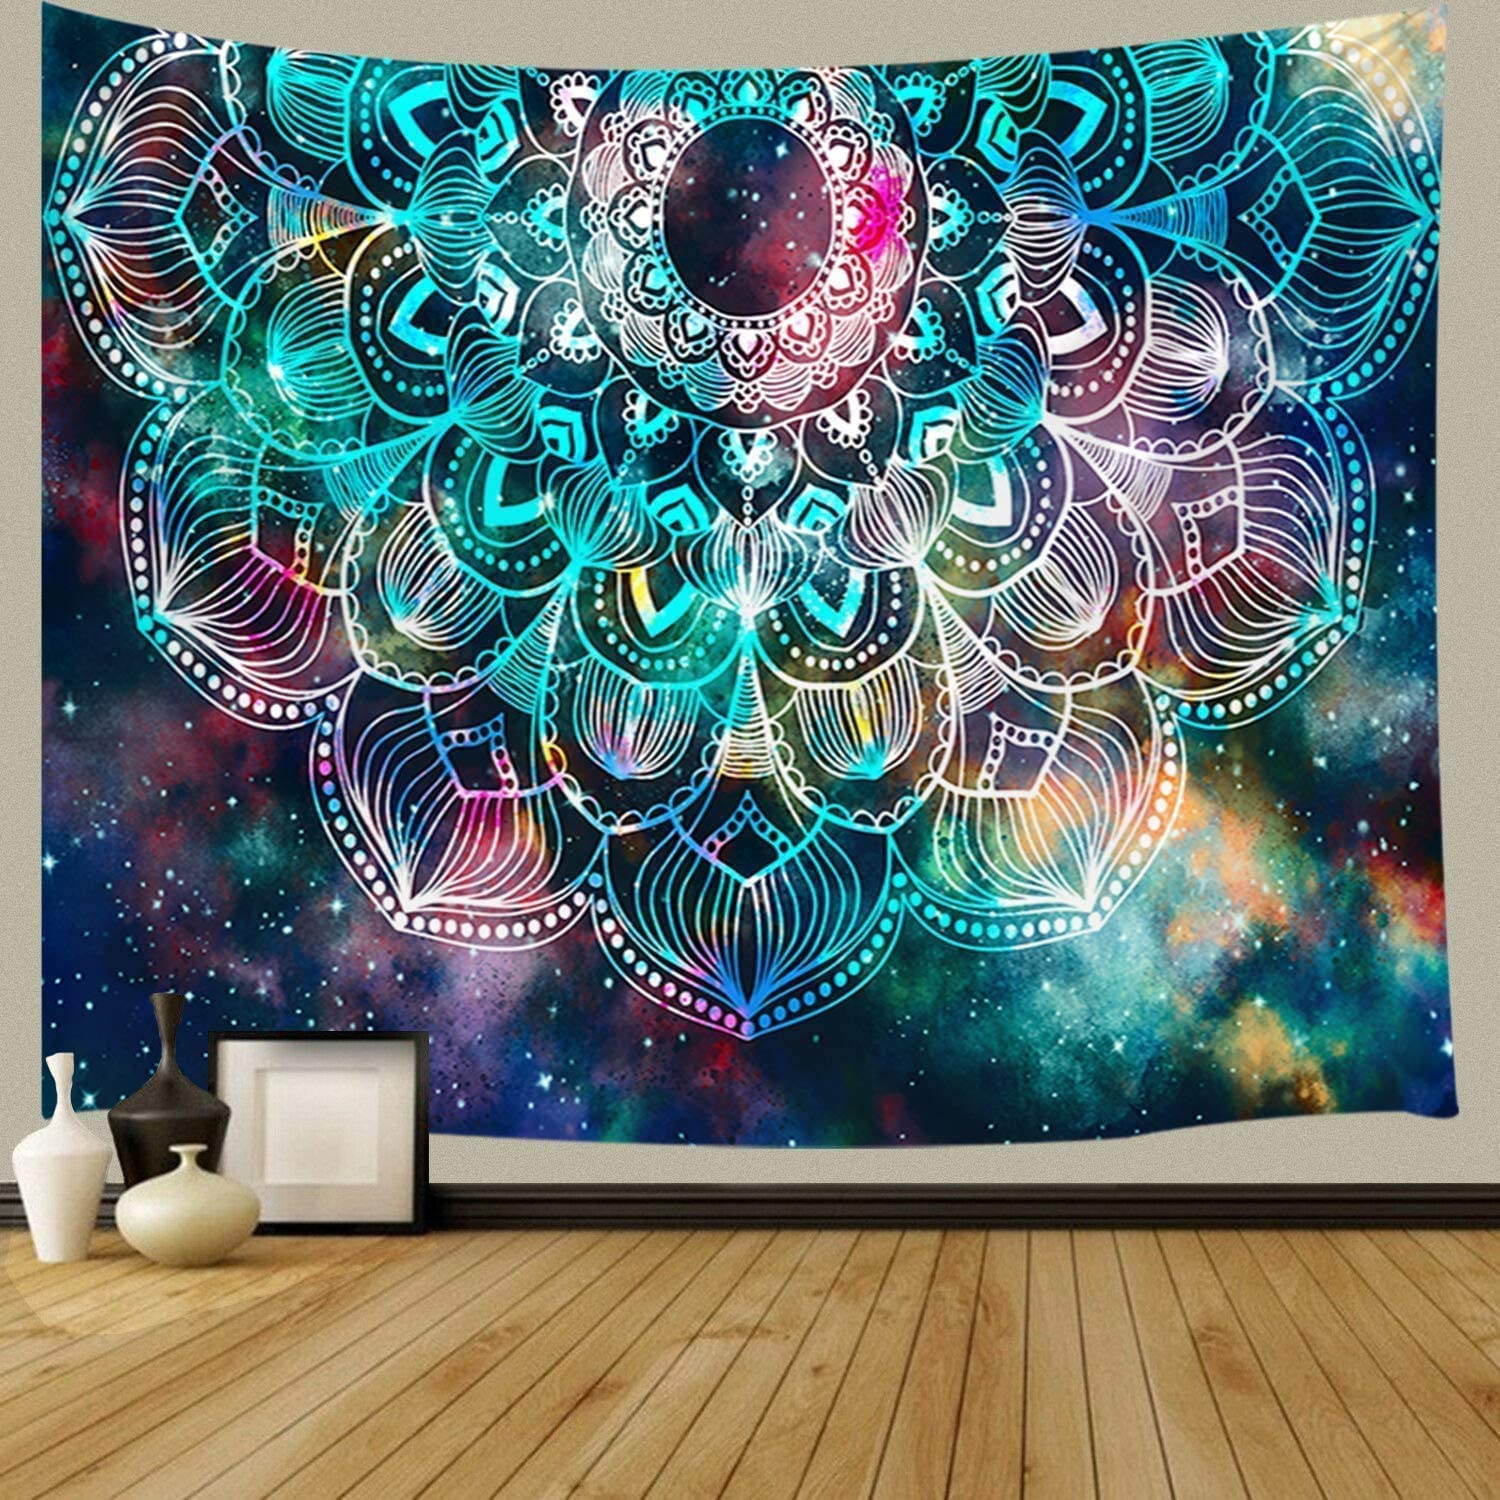 Mandala Wall Tapestry, Psychedelic Trippy Tapestry, Bohemian Hippie Mandala Flower Wall Hanging Tapestry for Yoga Bedroom Living Room Dorm Wall Decor Art Tapestry 71x60 inches